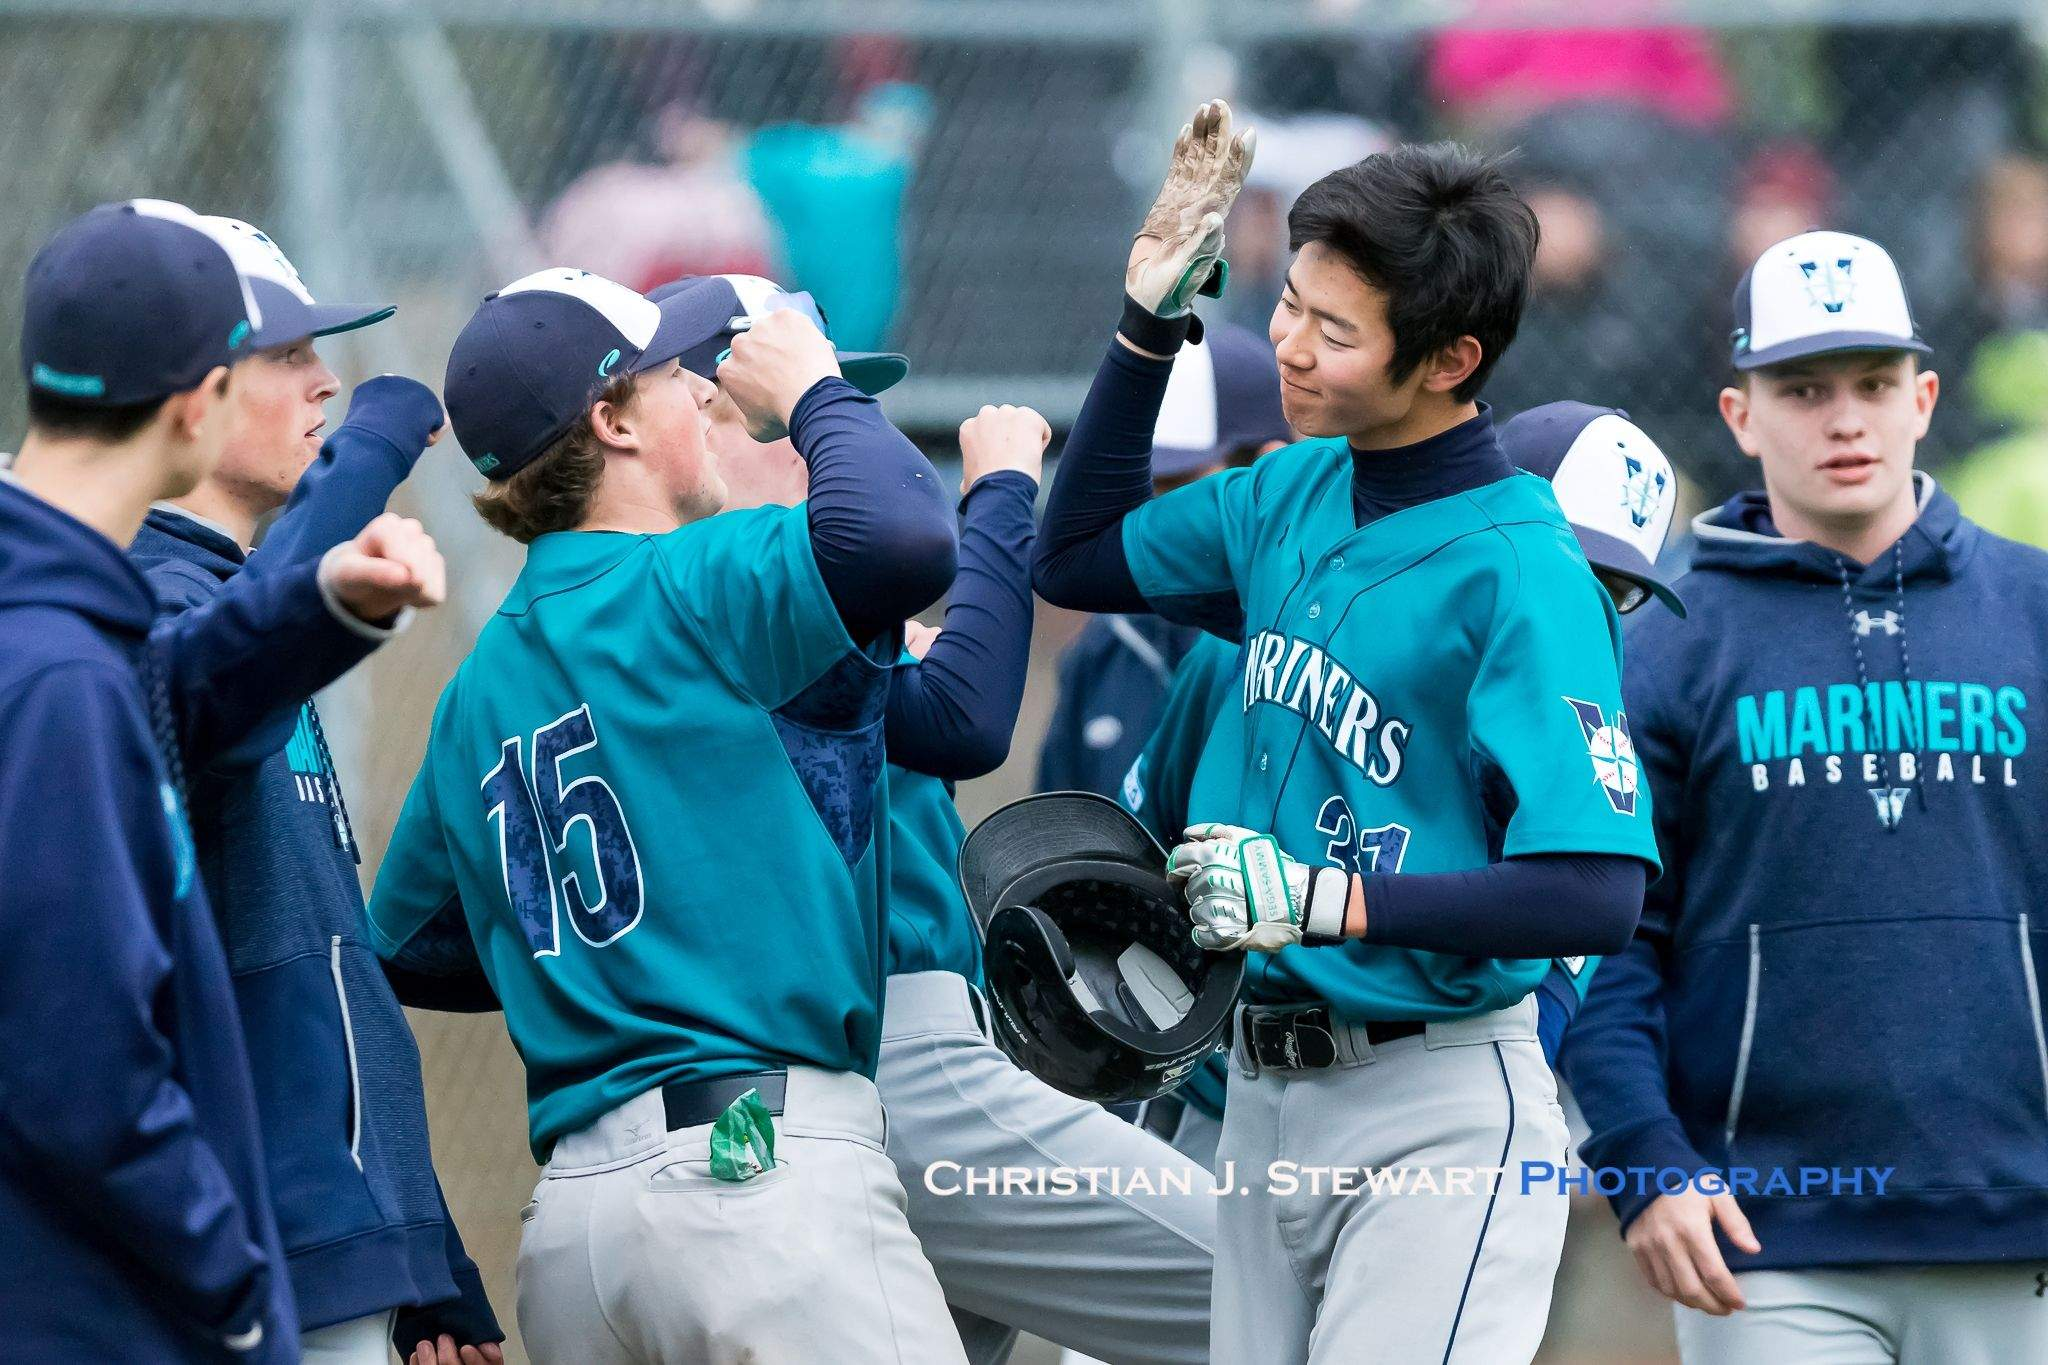 The Mariners Kodai Yaoita (31 right) is congratulated by Rhys Hill (15 left) after scoring in the first inning against the Eagles on Tuesday (Photo: Christian J. Stewart)